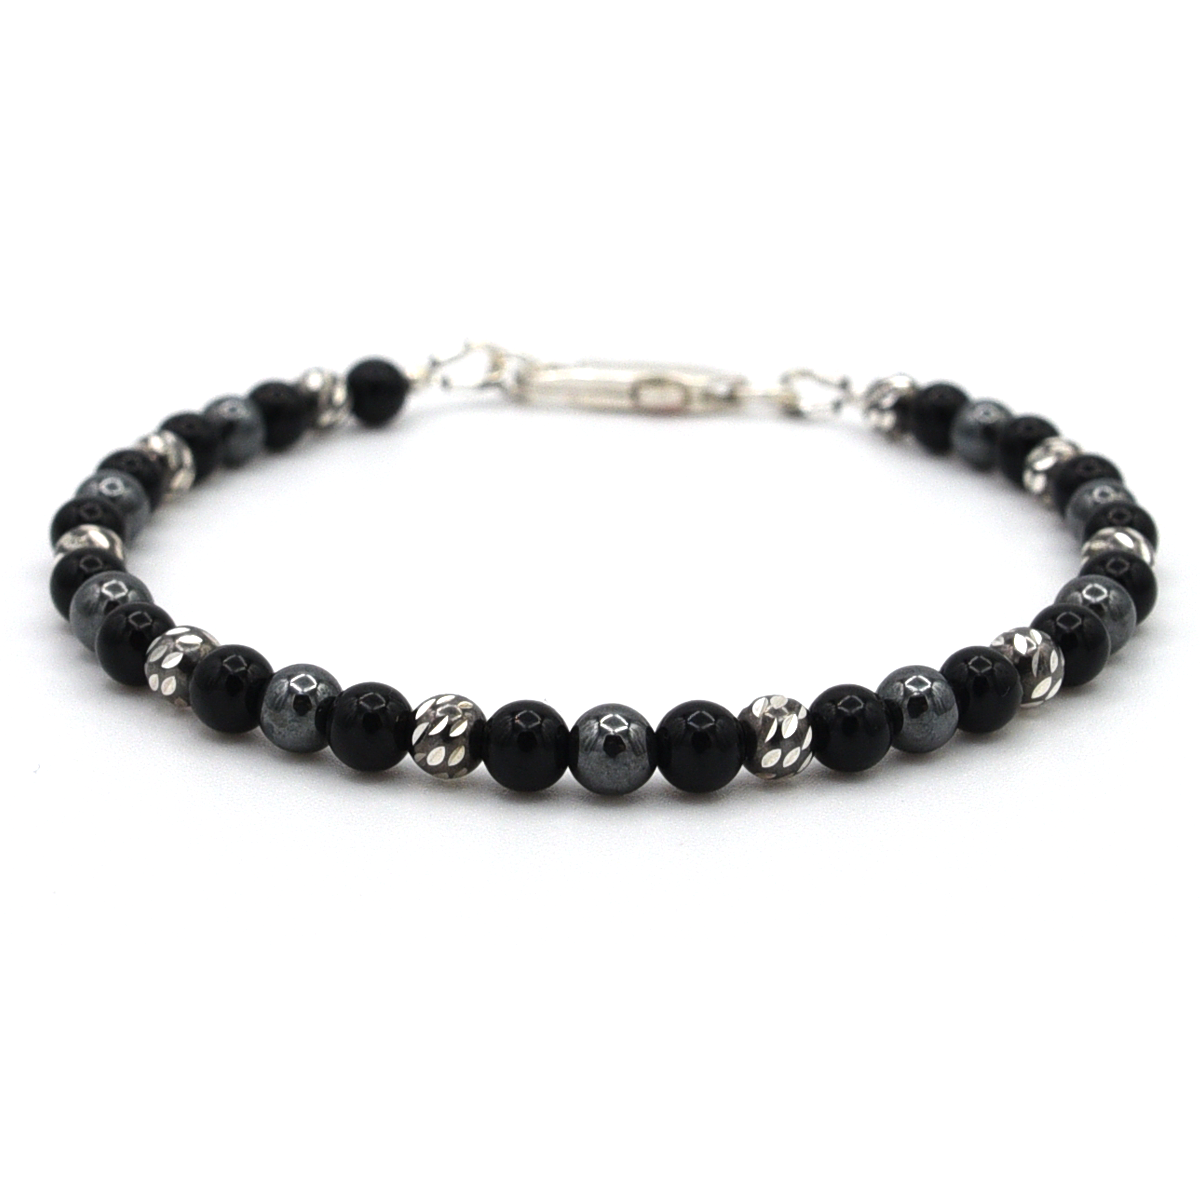 Black Rain - Rocktonica Jewellery London